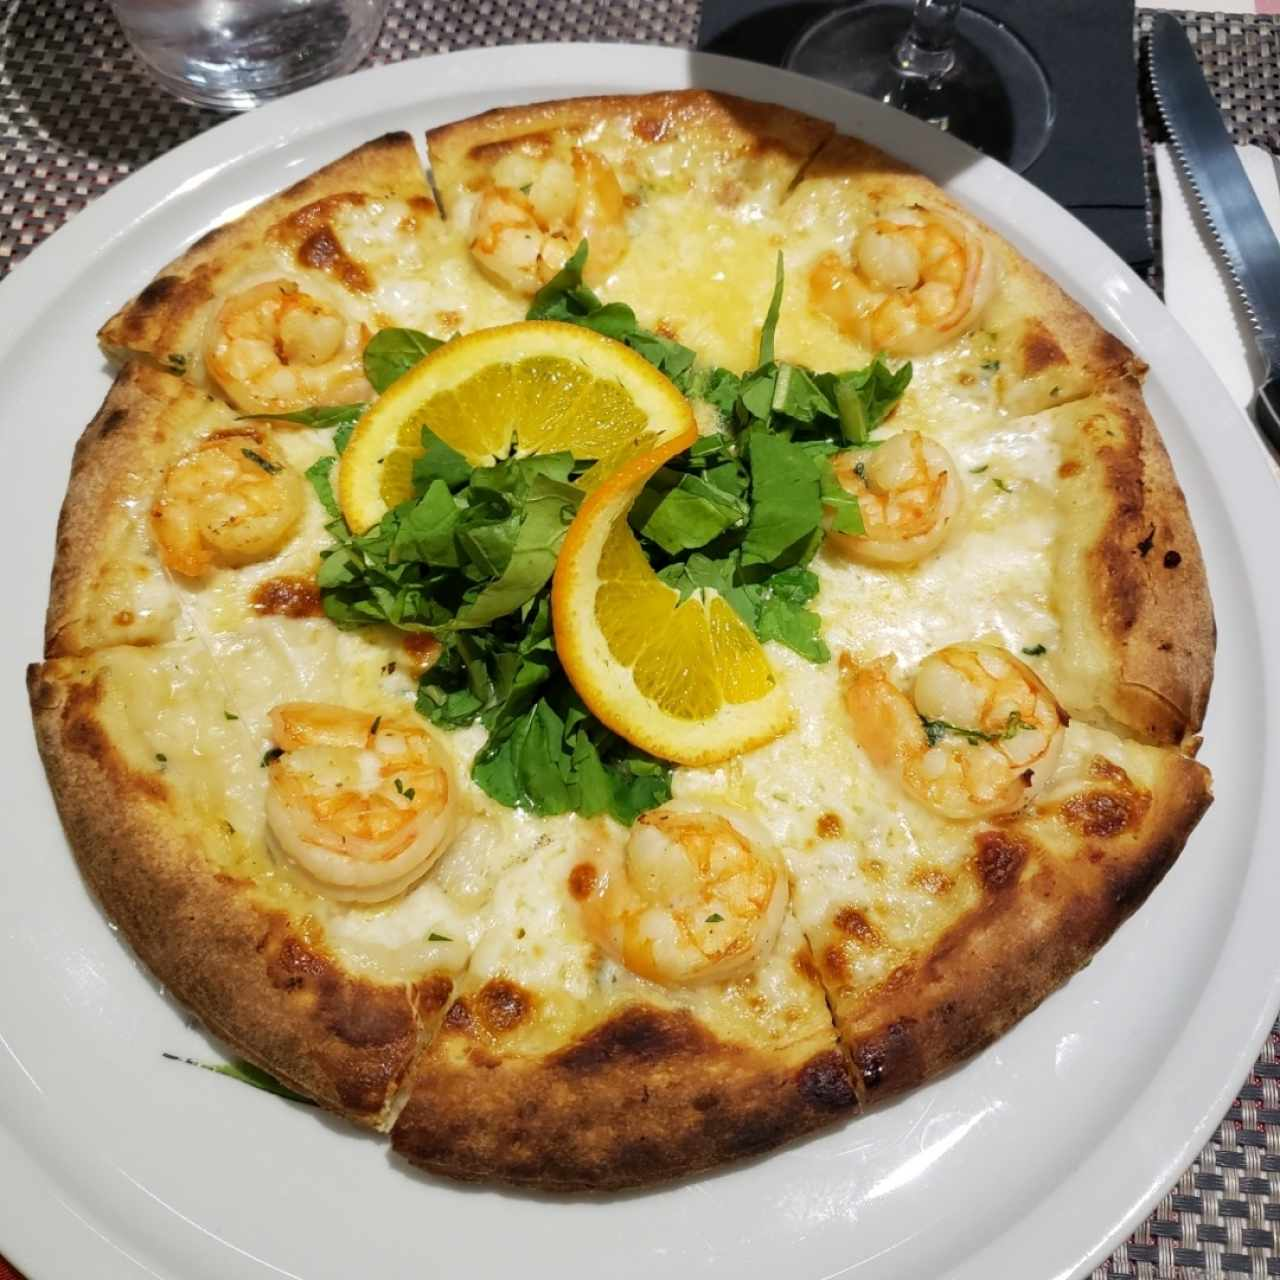 PIZZA WEEK (CAMARONES)